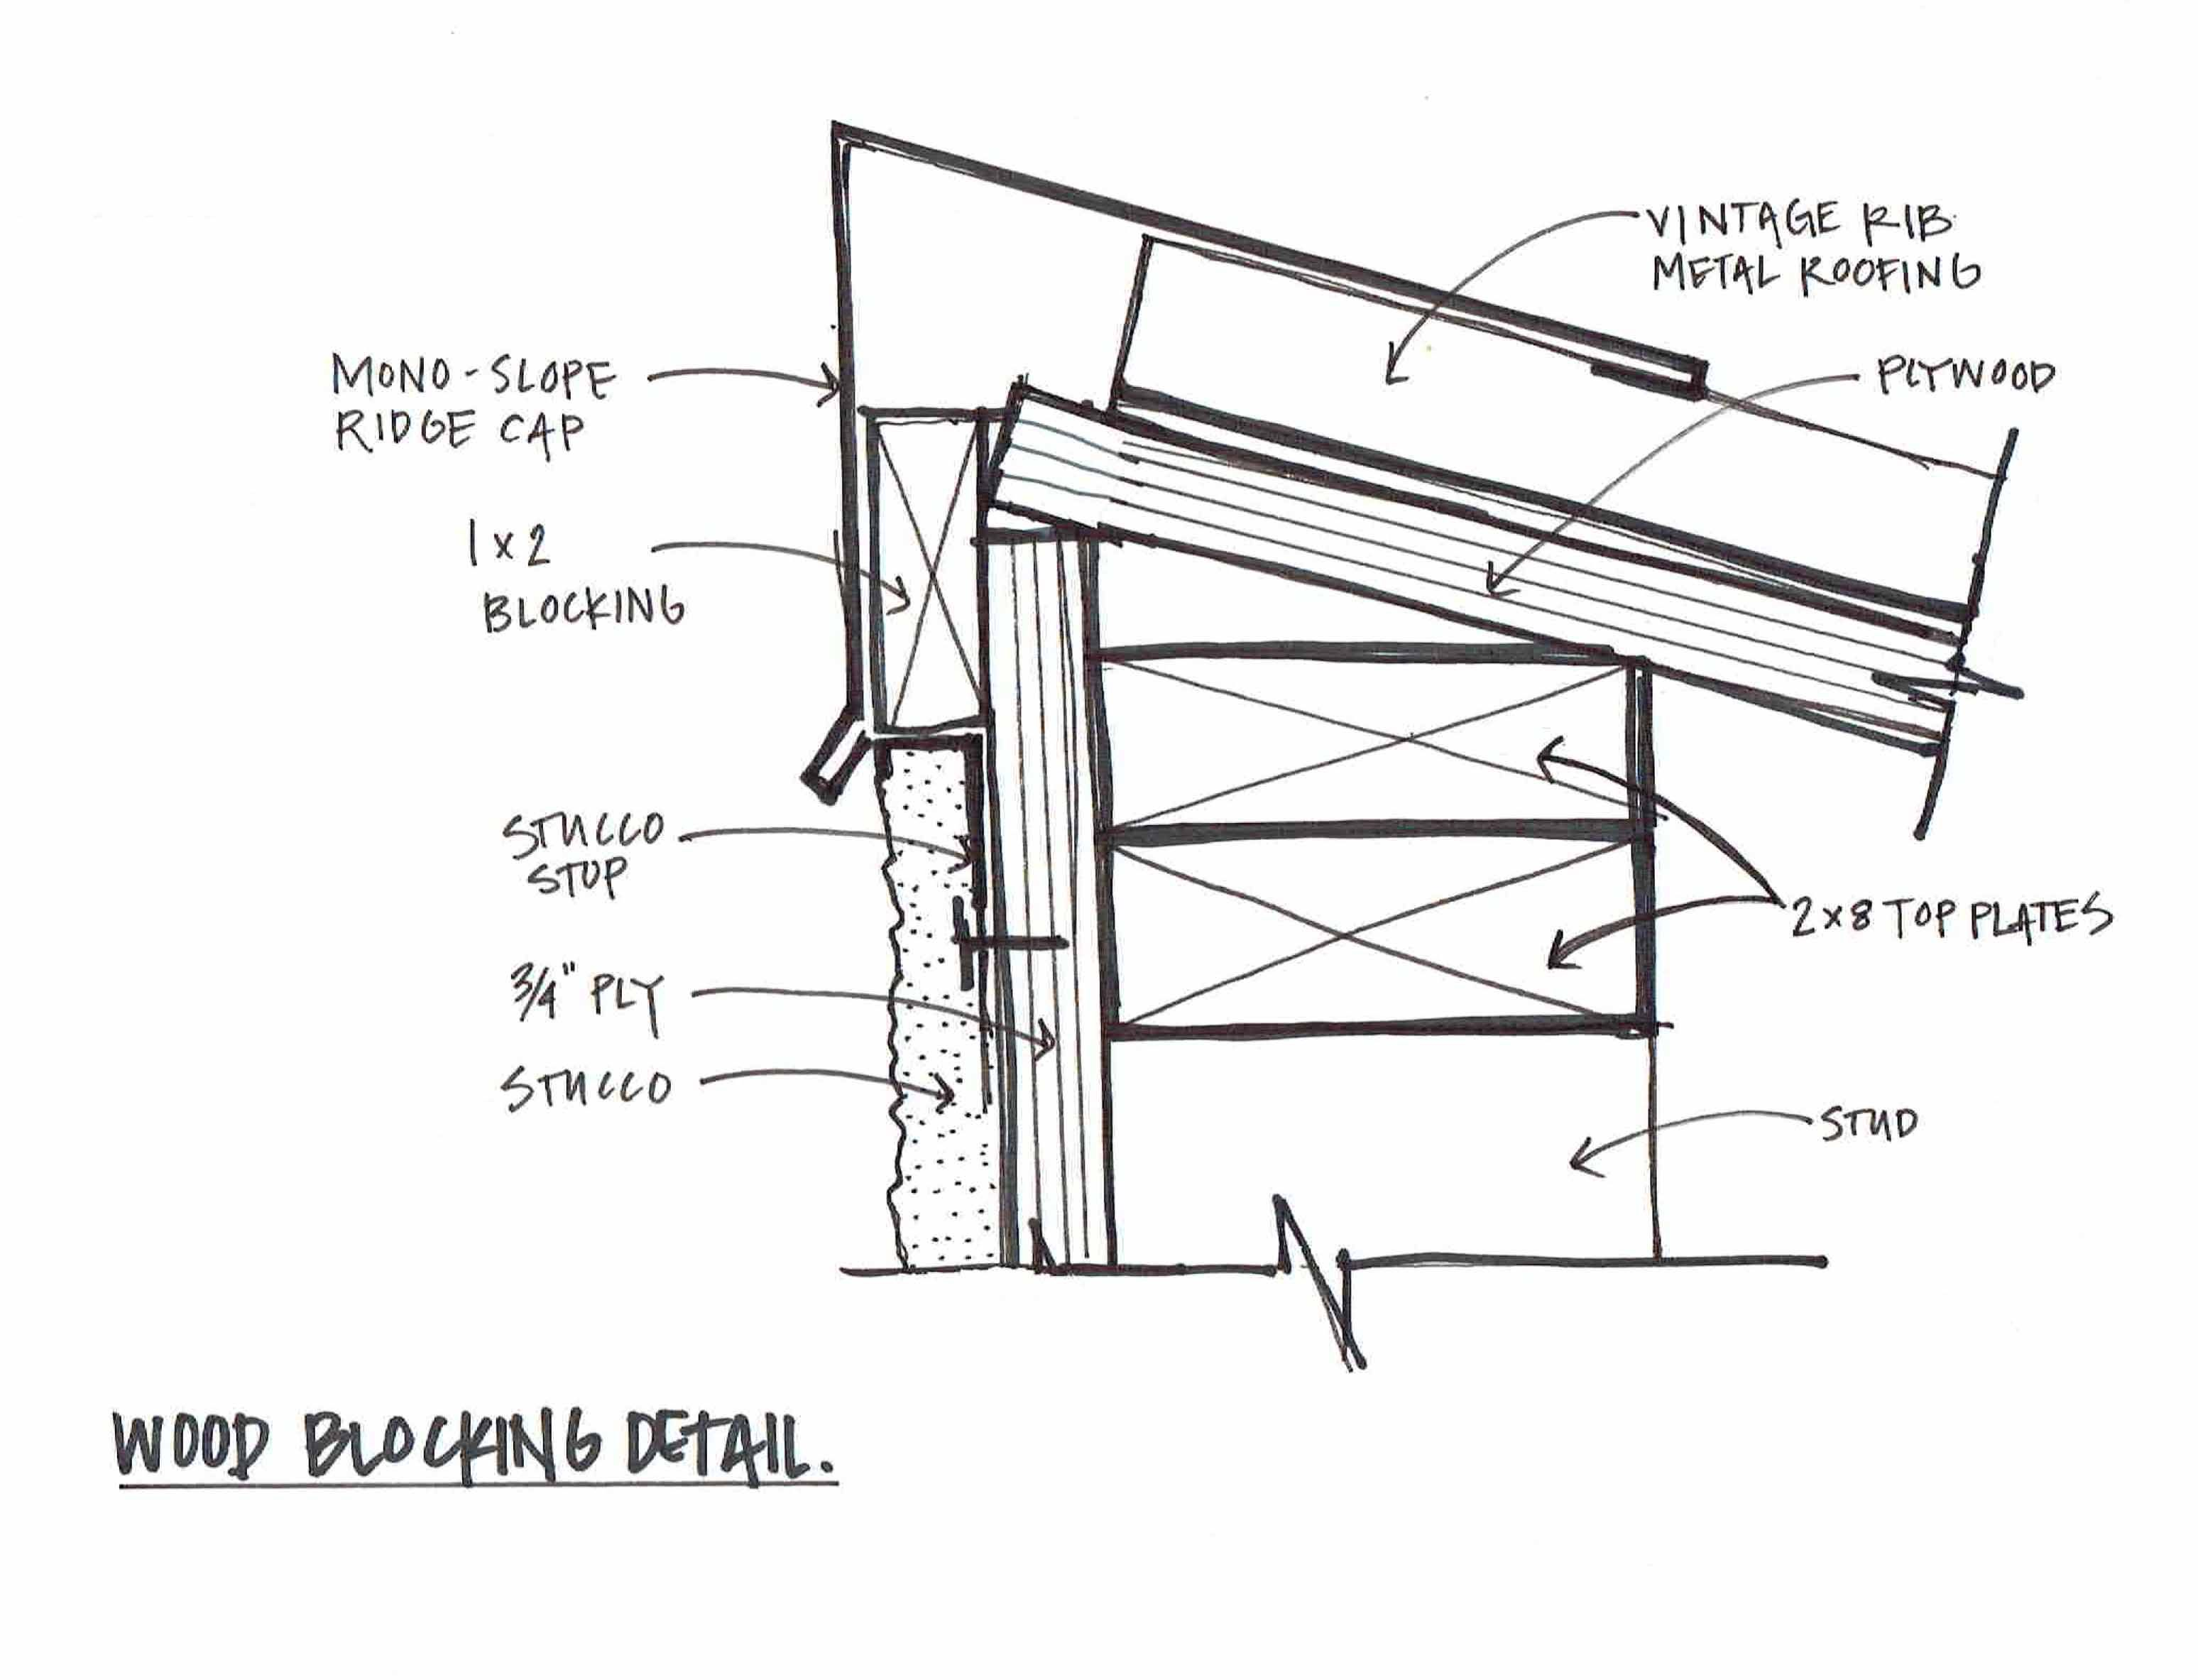 Image Result For Mono Pitch Metal Roof Details